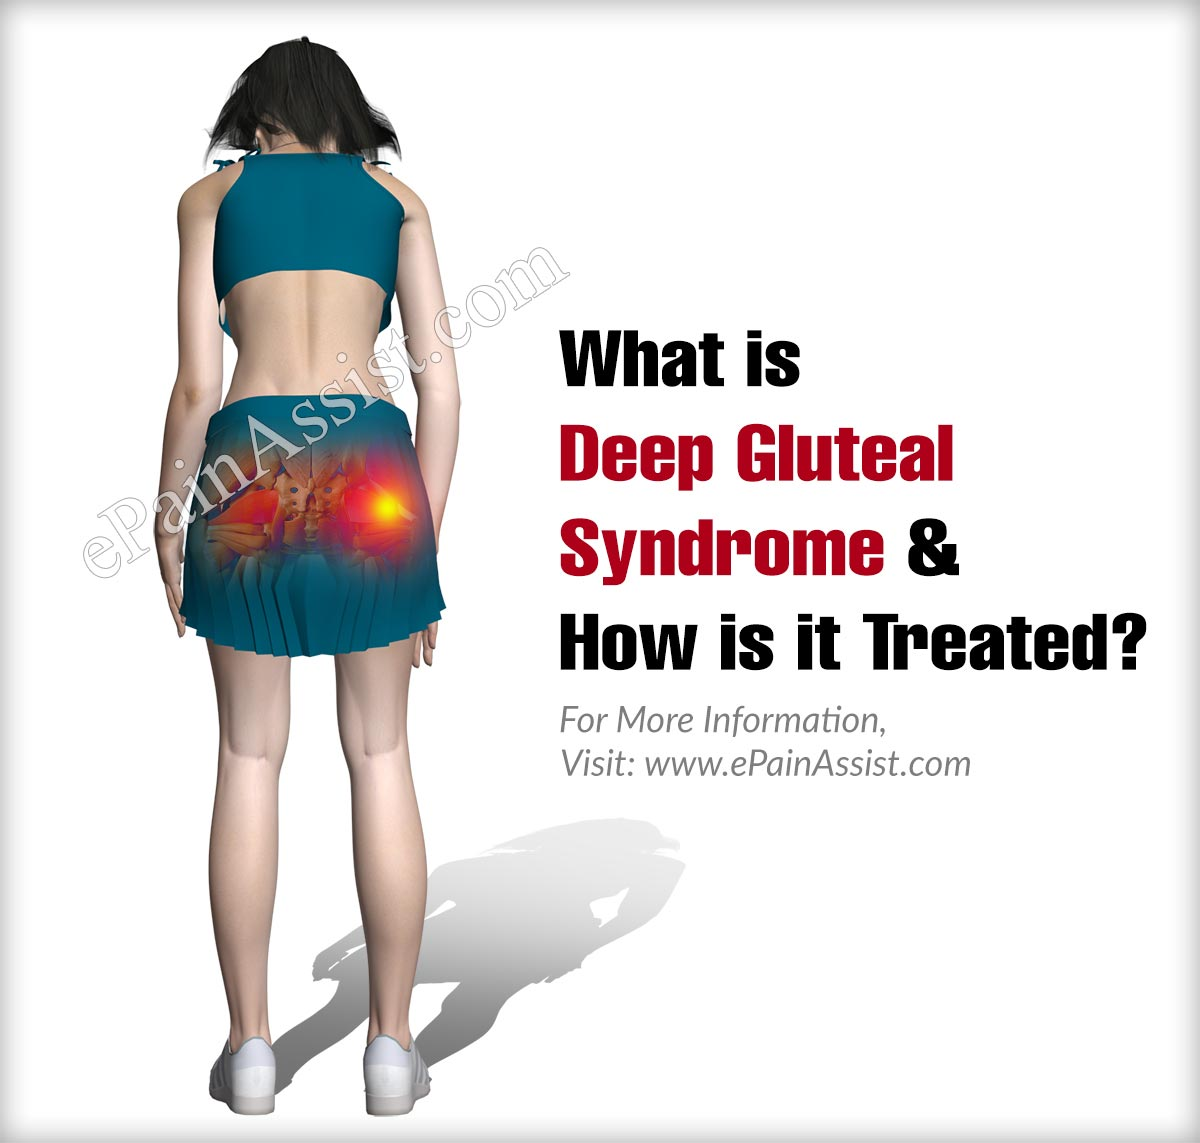 What is Deep Gluteal Syndrome & How is it Treated?